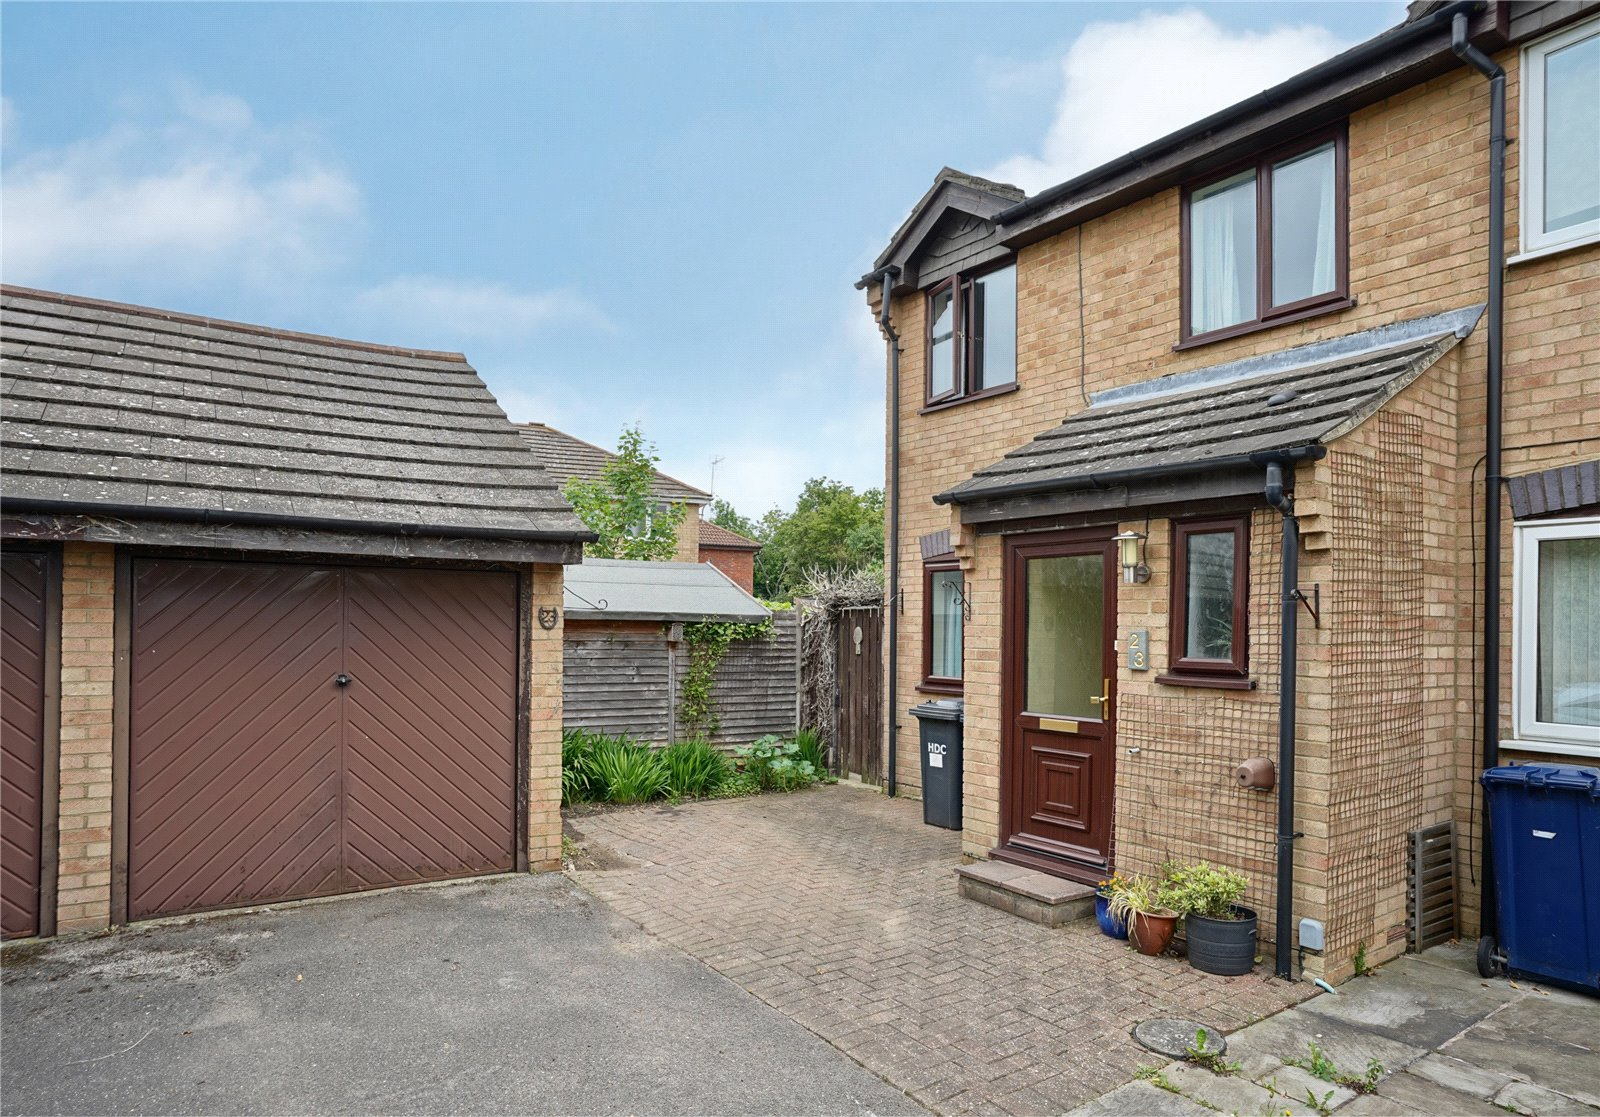 3 bed house for sale in Carisbrooke Way, Eynesbury 0